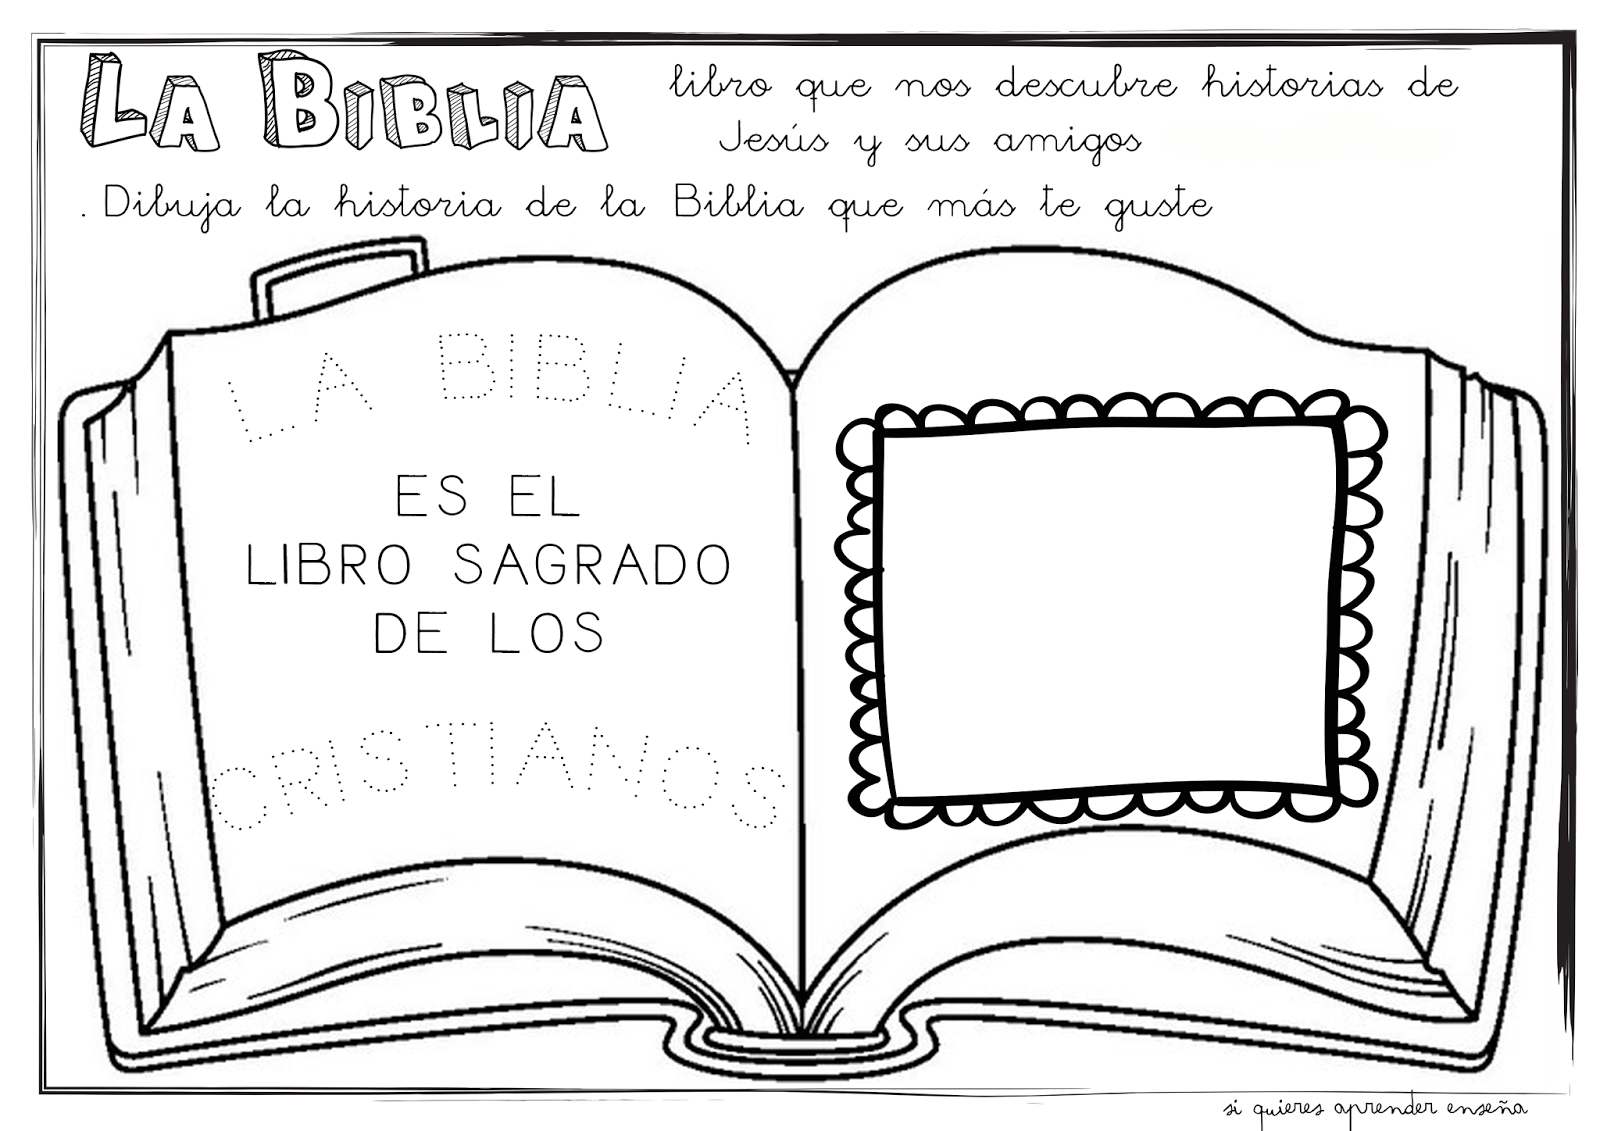 Violeta Y Girasol together with Pessoa Perfeita moreover Dibujos De La Felicidad Para Colorear together with La Biblia in addition Lucia Be 64400. on humor para facebook